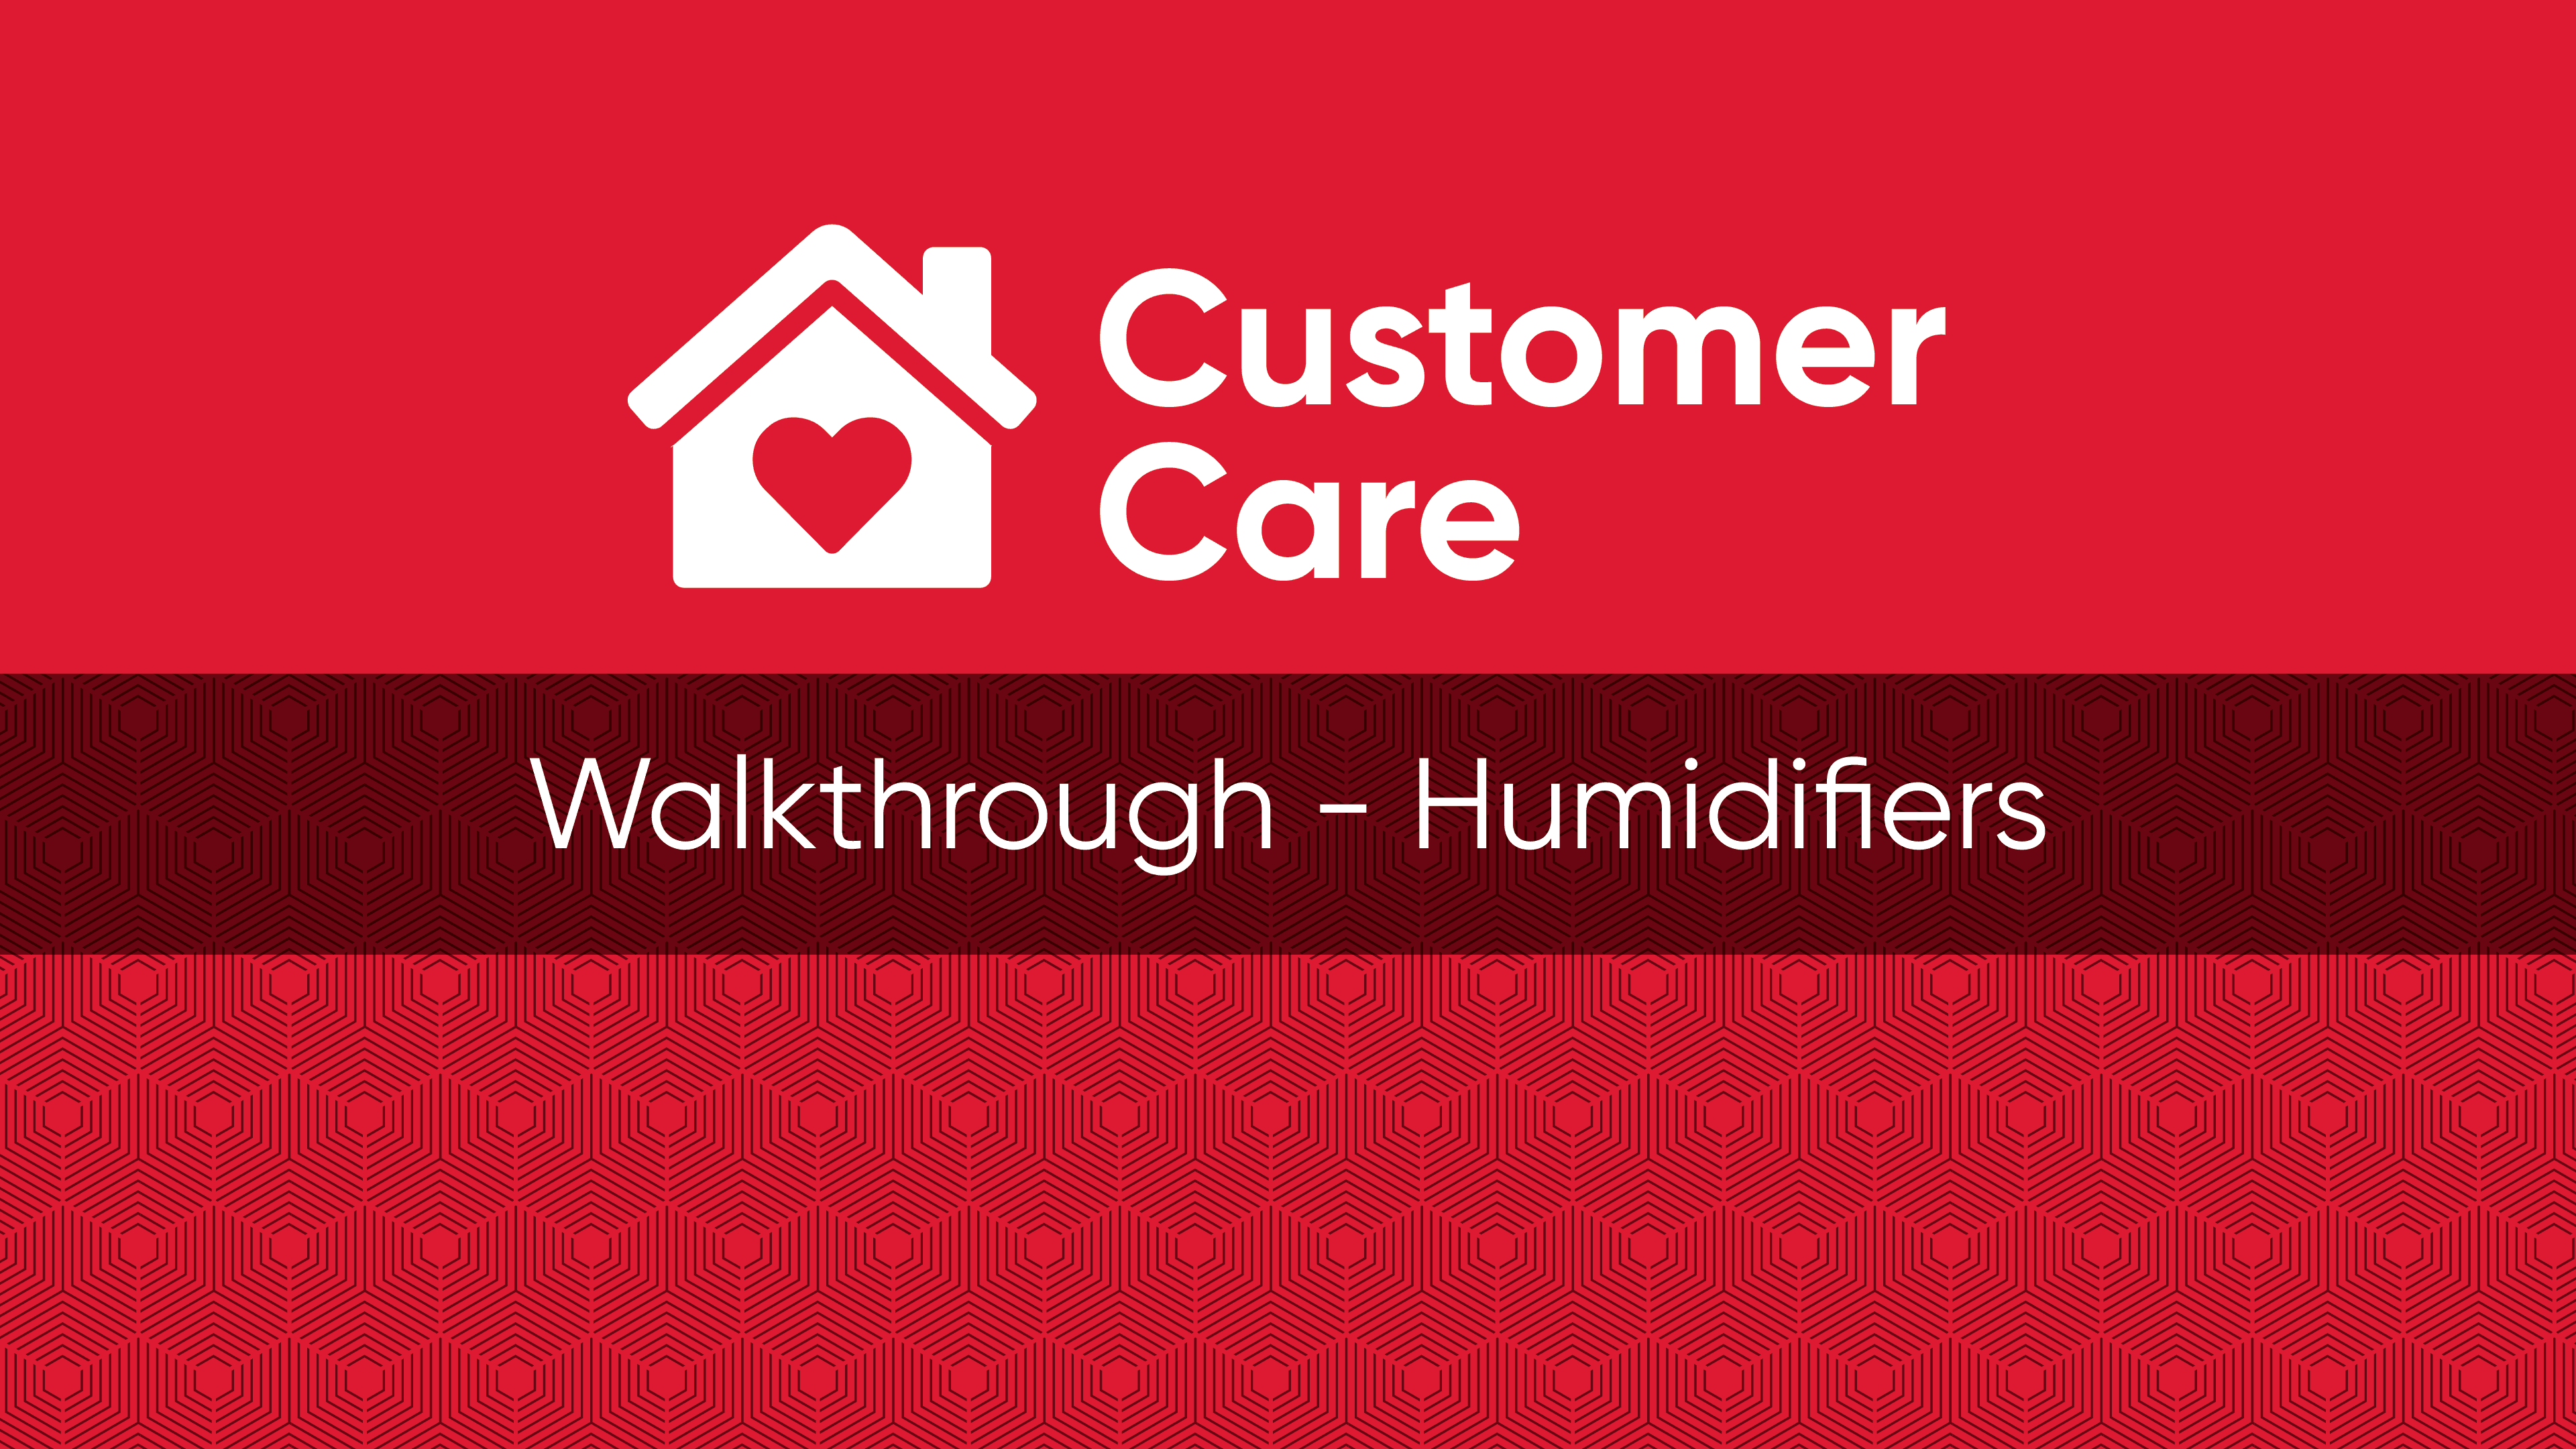 Customer Care – Humidifiers